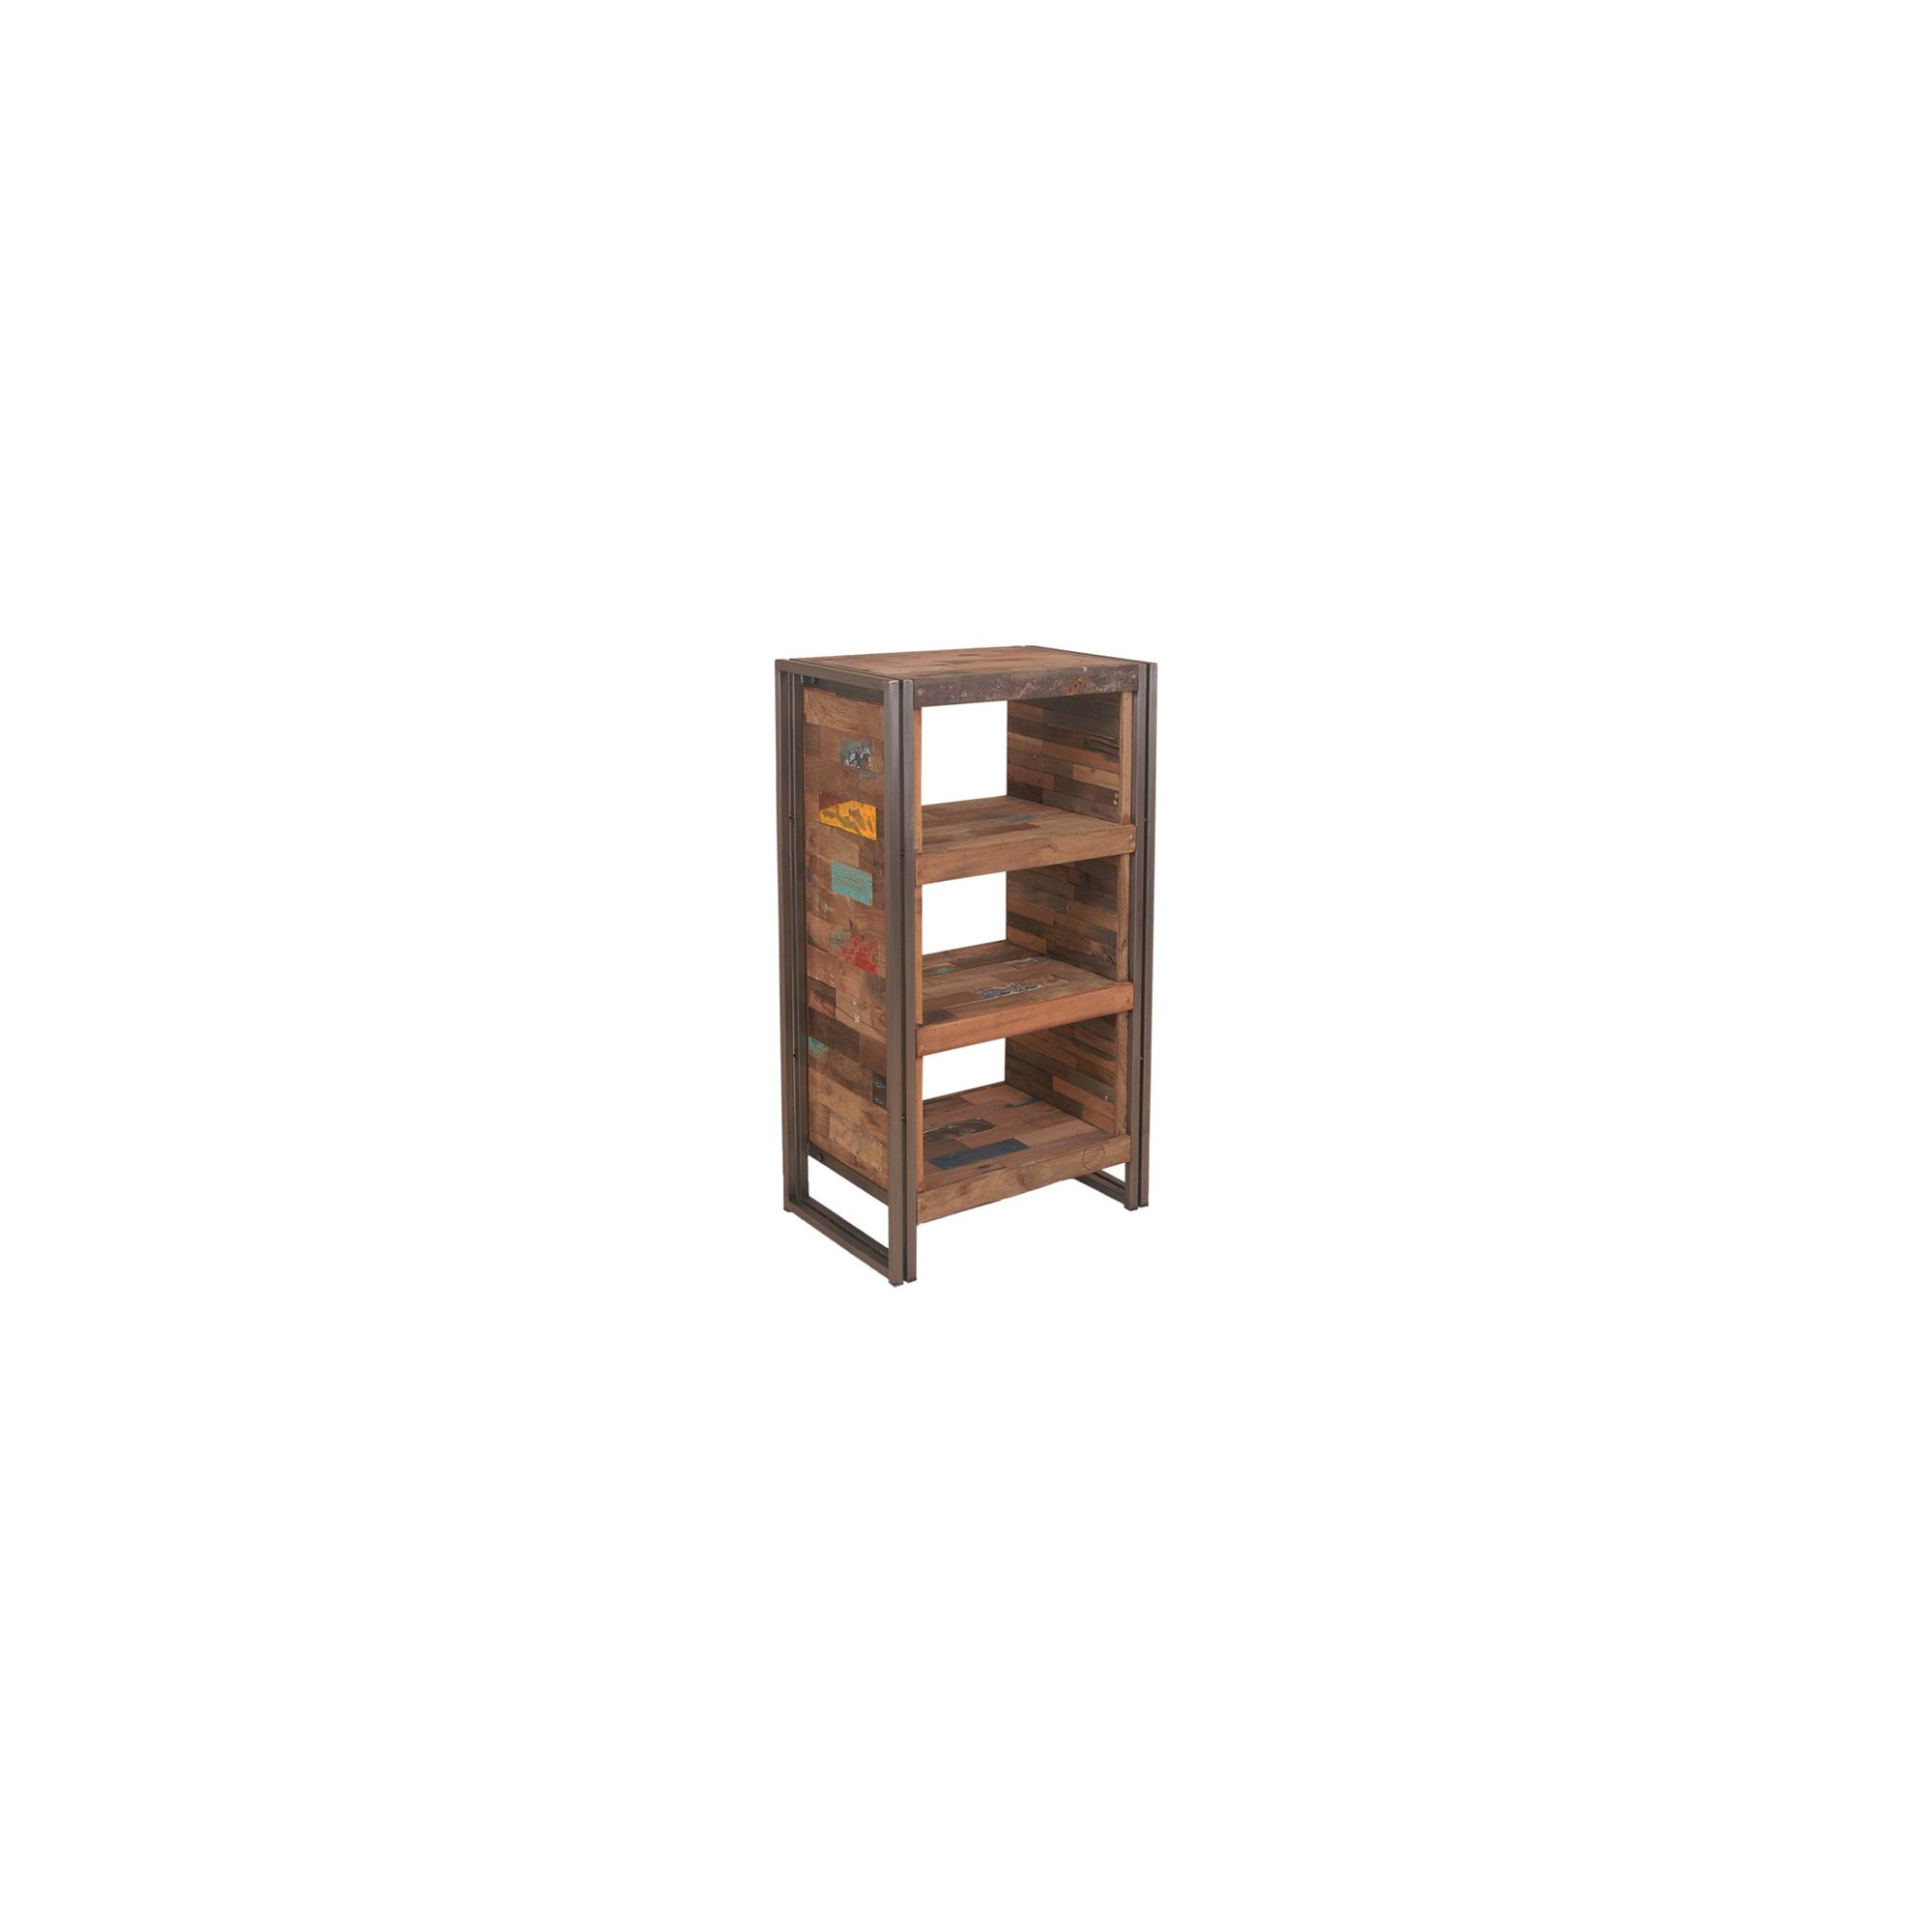 Oceans Apart Recycled Boat 3 Open Shelves High Chest at Tesco Direct